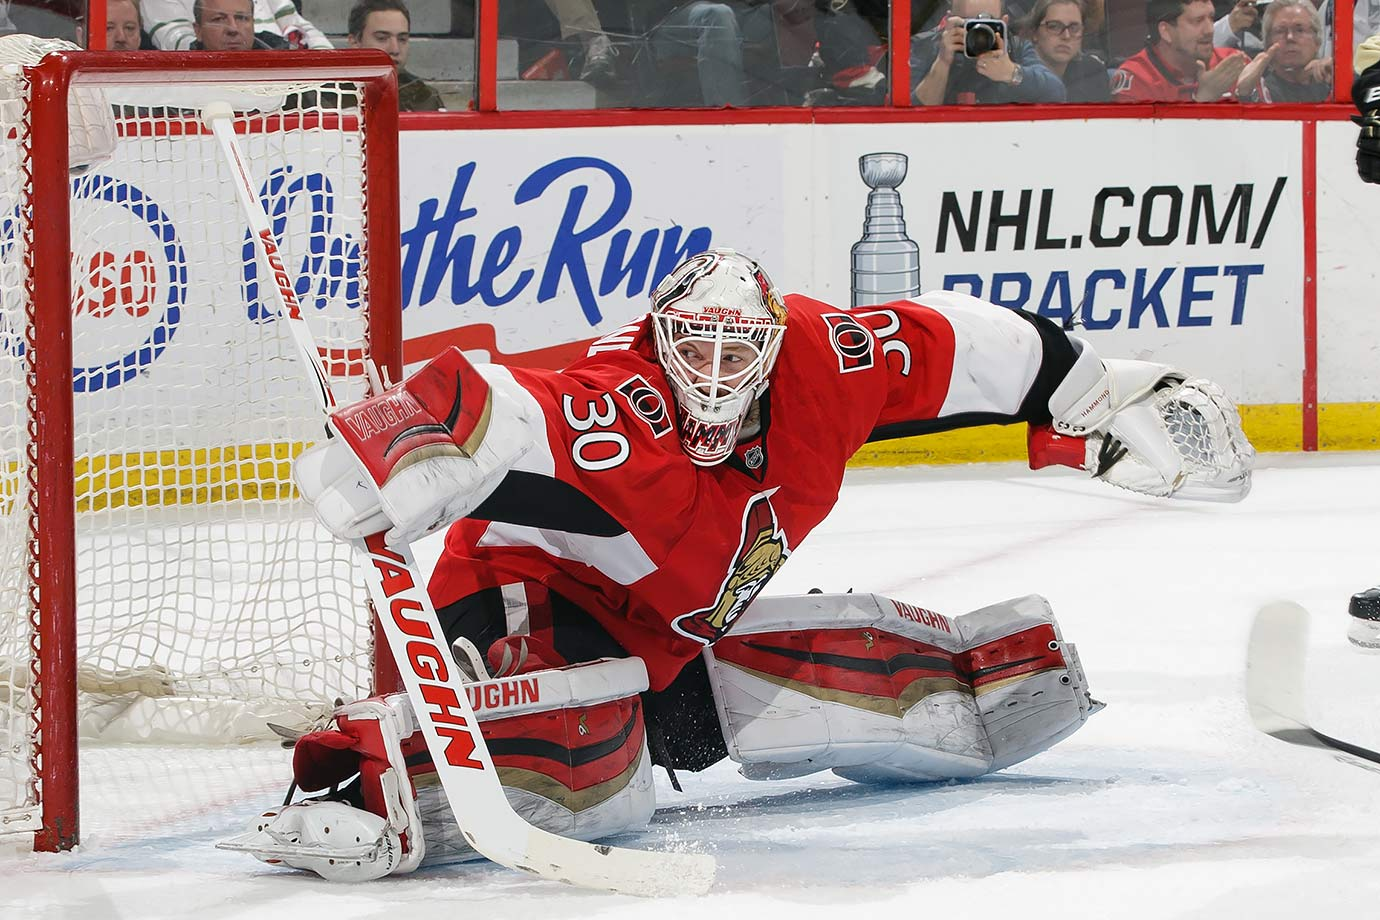 Undrafted 27-year-old goalie Andrew Hammon was in the midst of nondescript season with AHL Binghamton when an injury to starter Craig Anderson prompted his recall to Ottawa. Once there, he went on a miraculous 20-1-2 tear down the stretch to lead the floundering Senators to a shocking berth in the Eastern Conference playoffs.